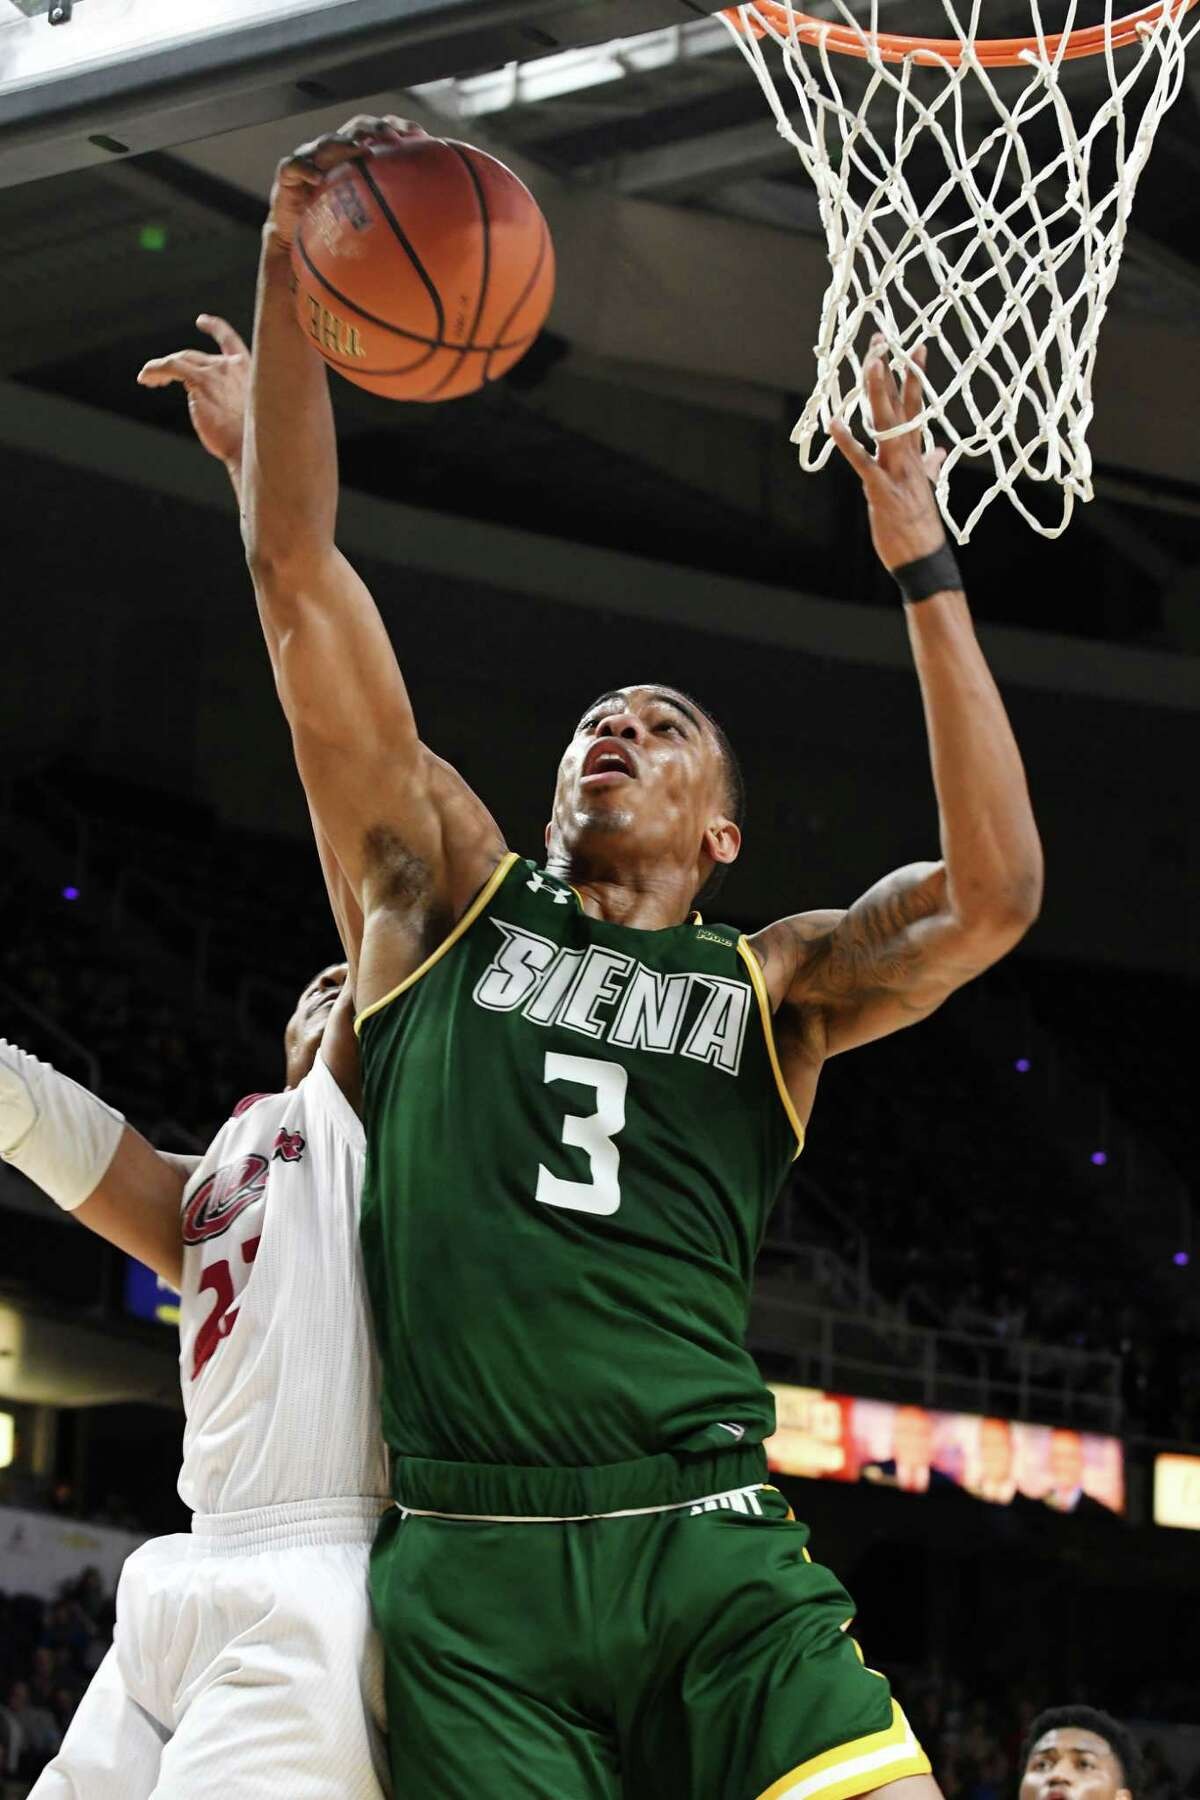 Siena forward Manny Camper pulls down a rebound during a MAAC Tournament quarterfinal game against Rider University on Saturday night, March 9, 2019, at the Times Union Center in Albany, N.Y. (Will Waldron/Times Union)